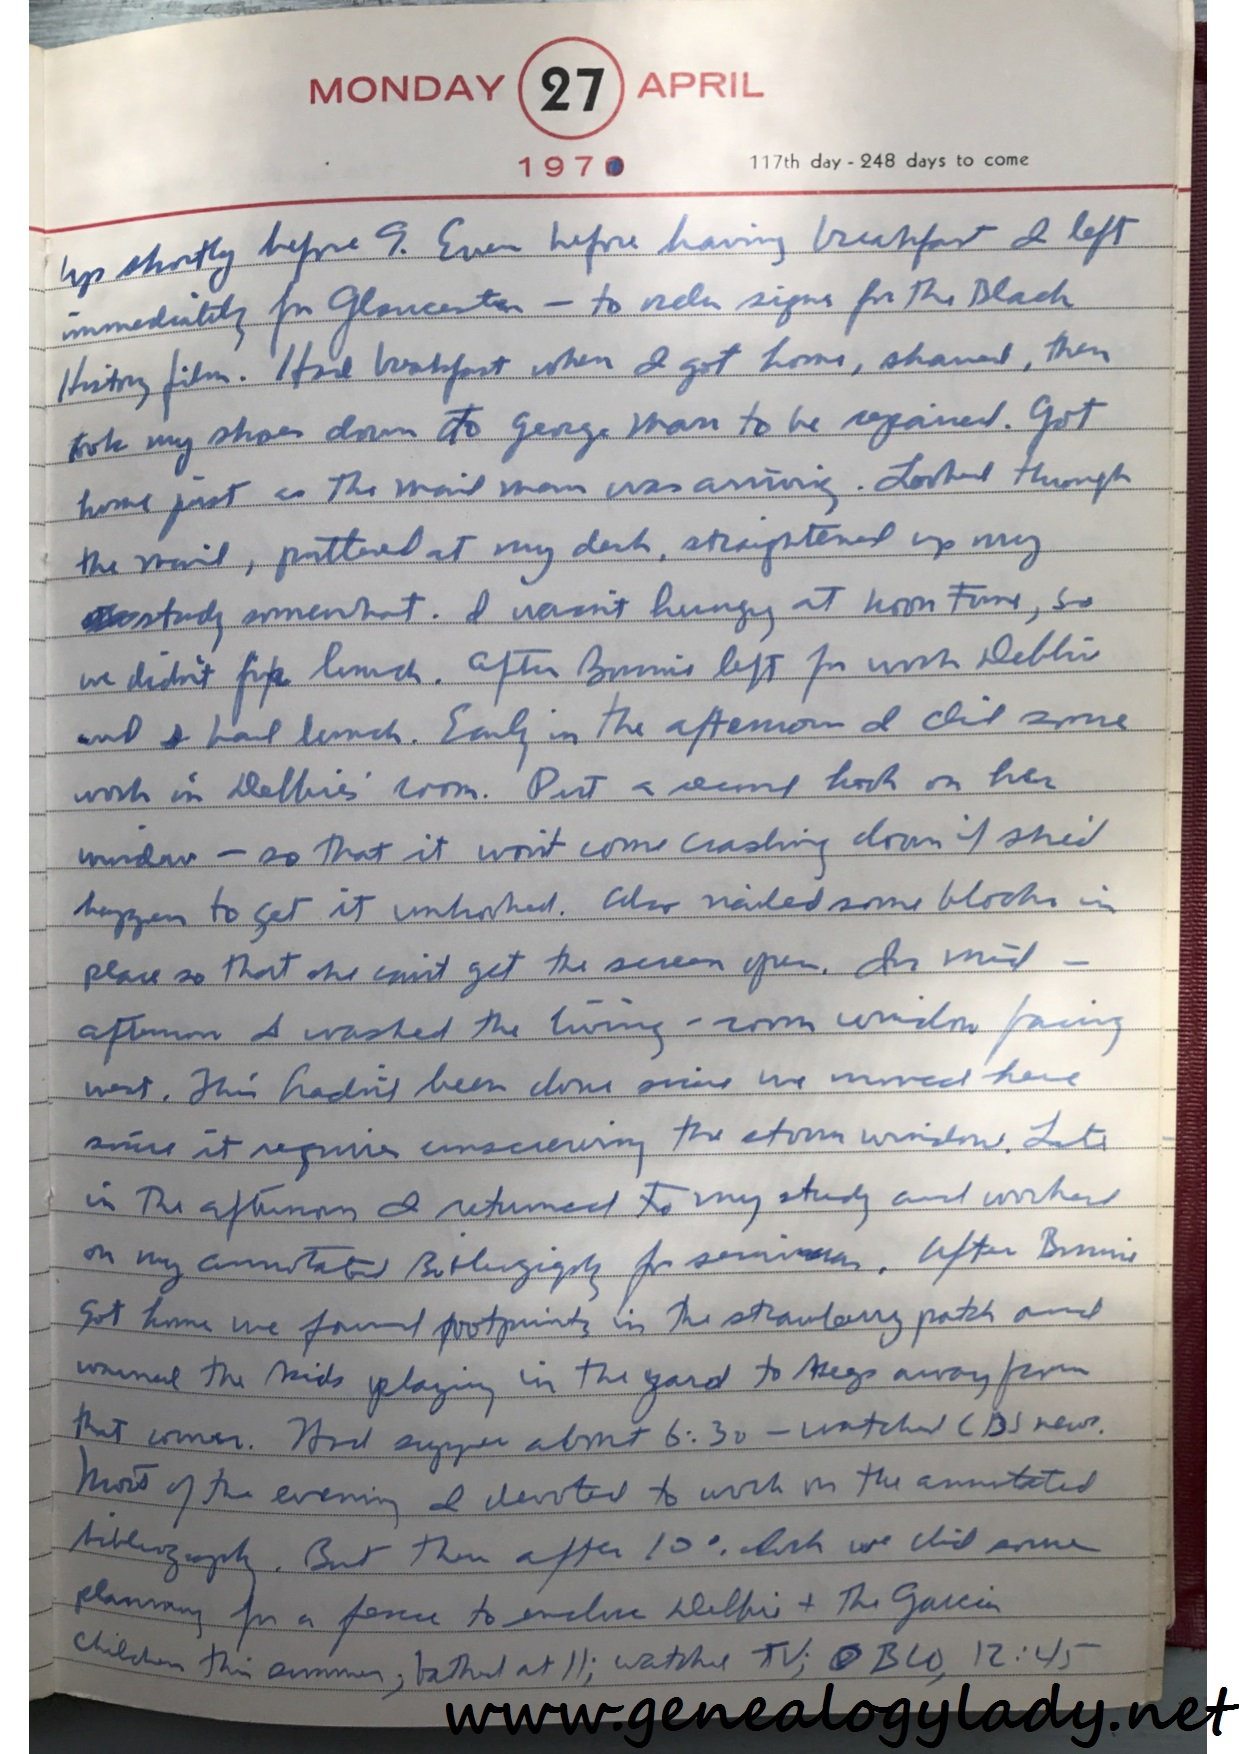 thesis statement for the play fences by august wilson Write an essay that makes a specific argument about how judgment and forgiveness work as themes in the play fences by august wilson  sentence thesis statement at .